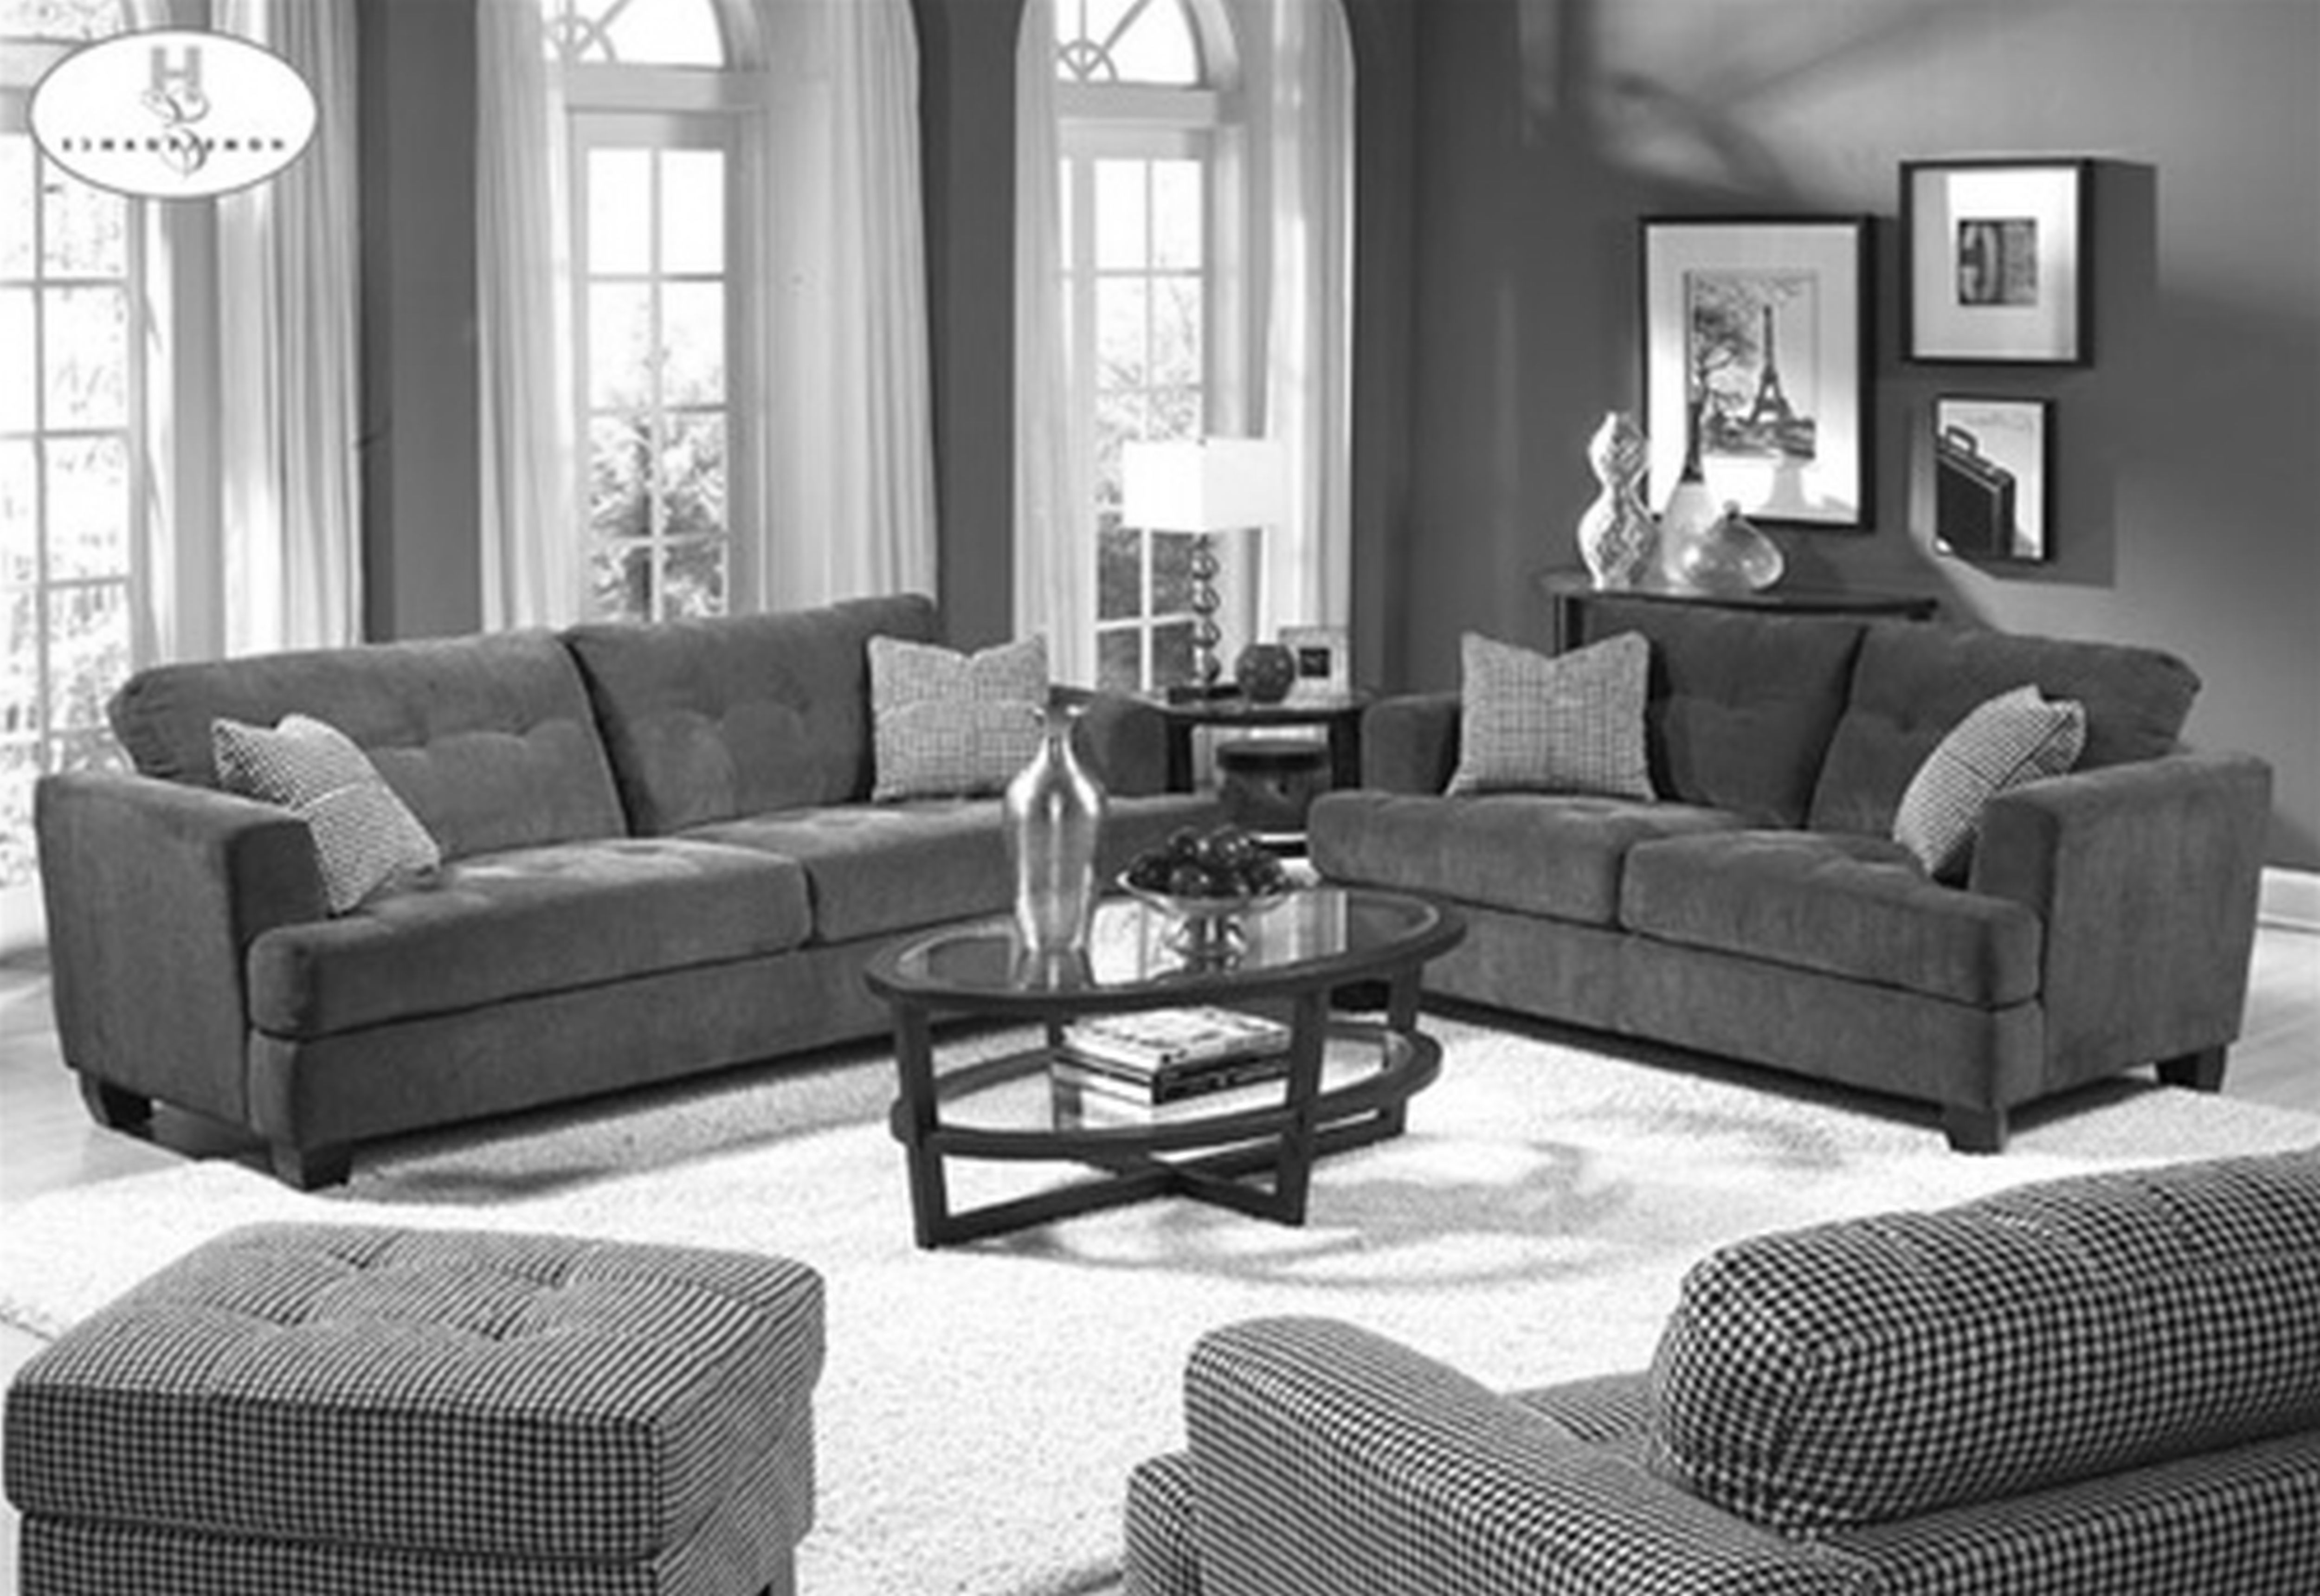 Current Colorful Sofas And Chairs Throughout Living Room Ideas Grey Walls Sofa Chairs Crystal Chandelier Grey (View 8 of 20)